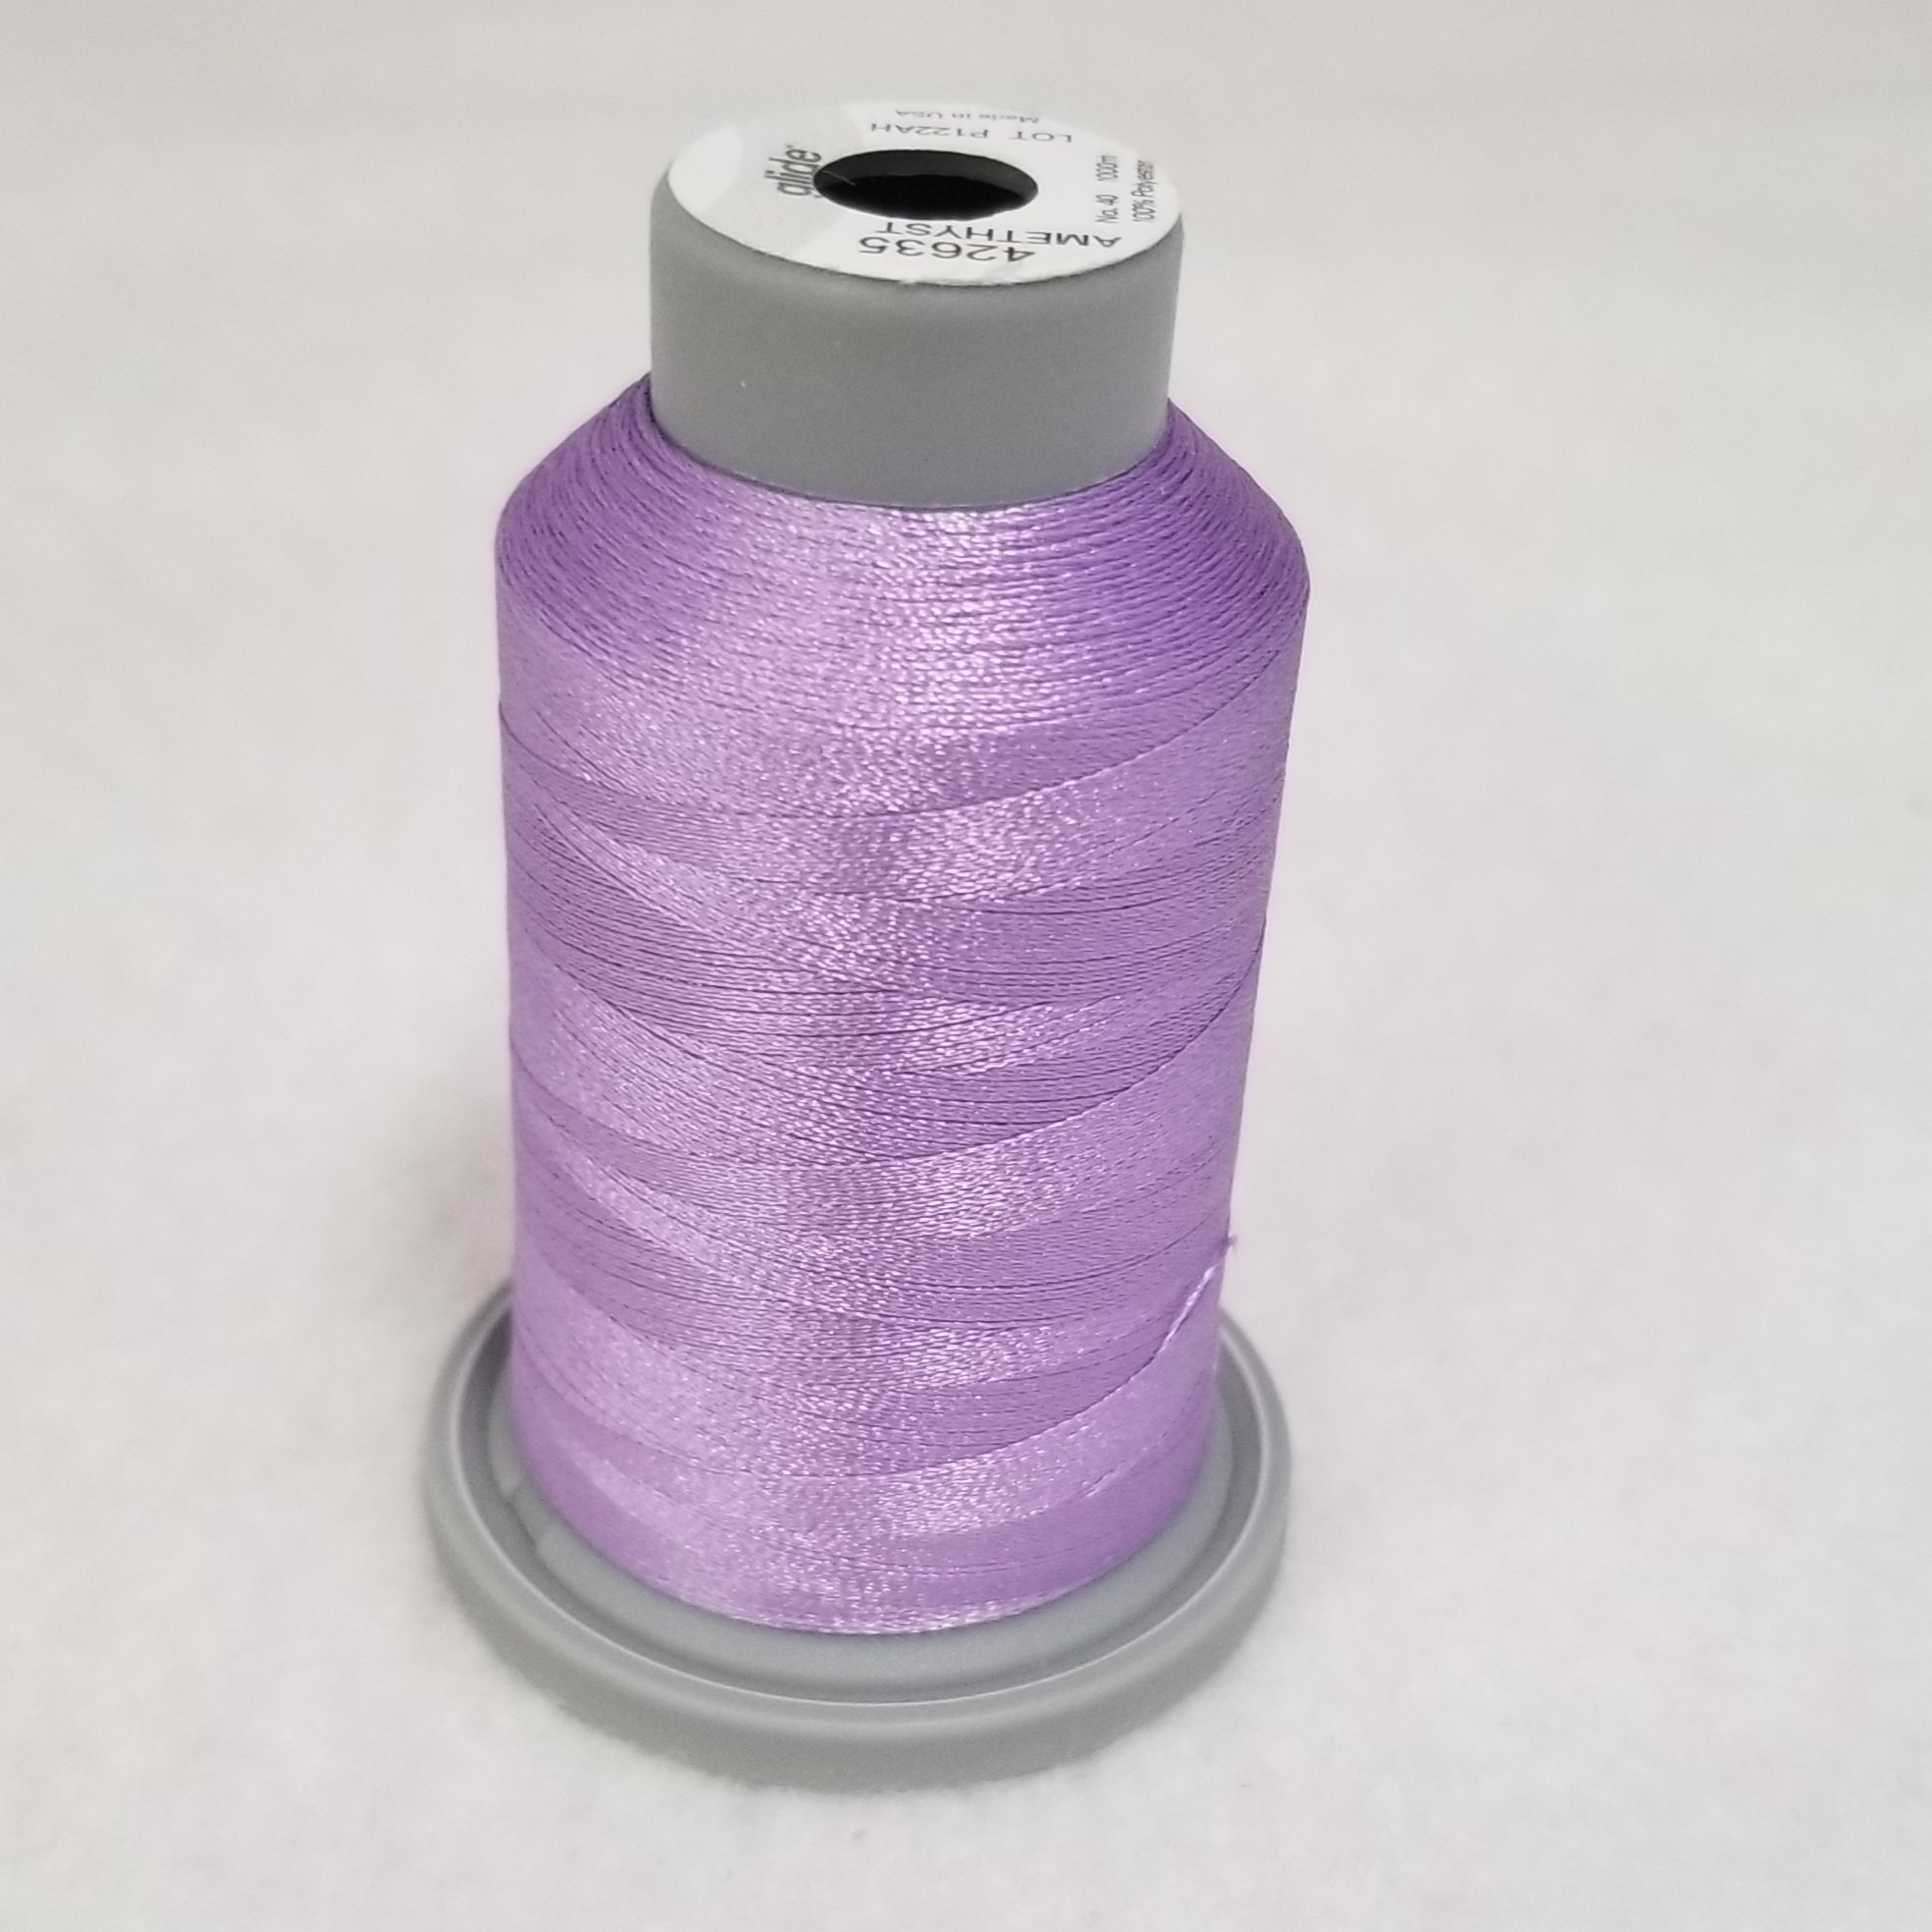 Amethyst Purple Glide Thread Spool